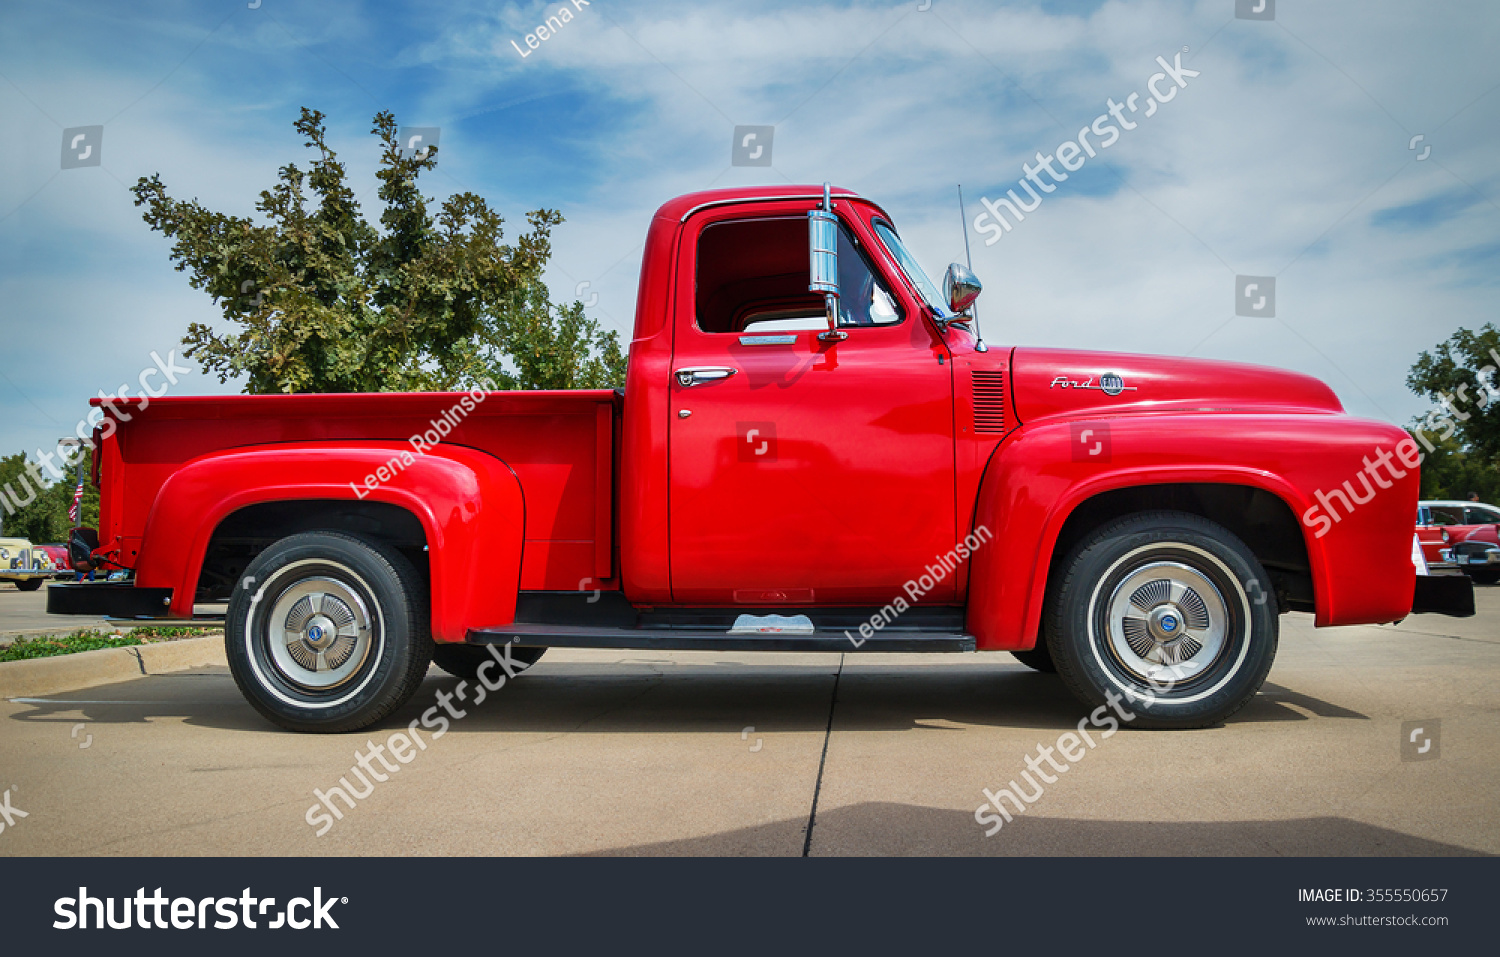 Westlake Texas October 17 2015 Side Stock Photo Edit Now 355550657 1955 Ford F100 Rat Rod Trucks View Of A Red